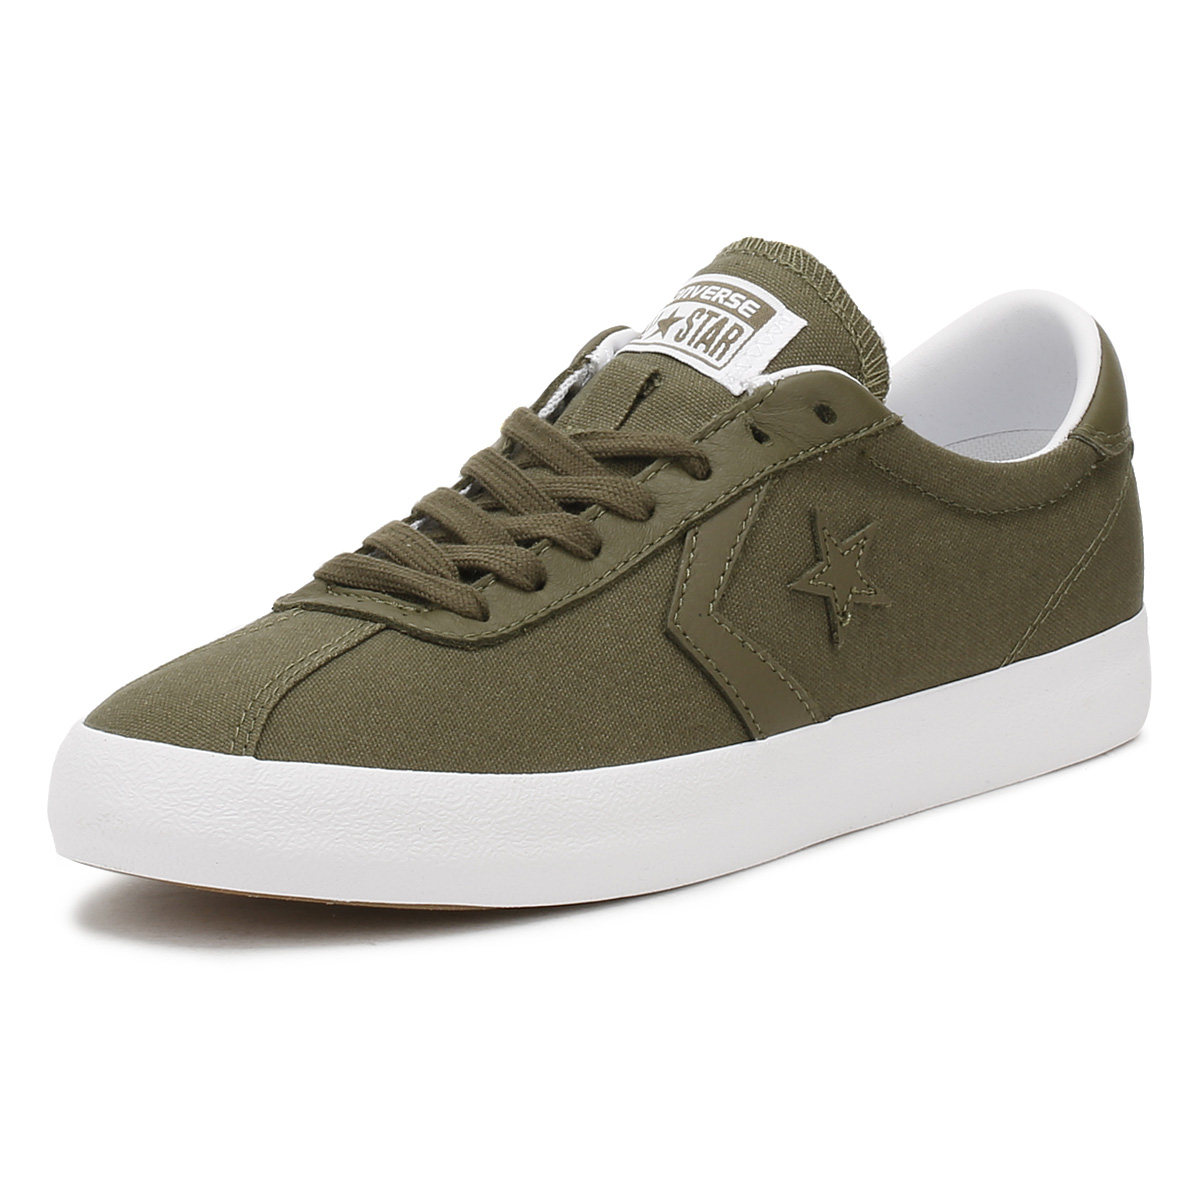 45a680400816 Details about Converse Mens Olive Green Breakpoint Ox Trainers Canvas Shoes  Lace Up Sneakers